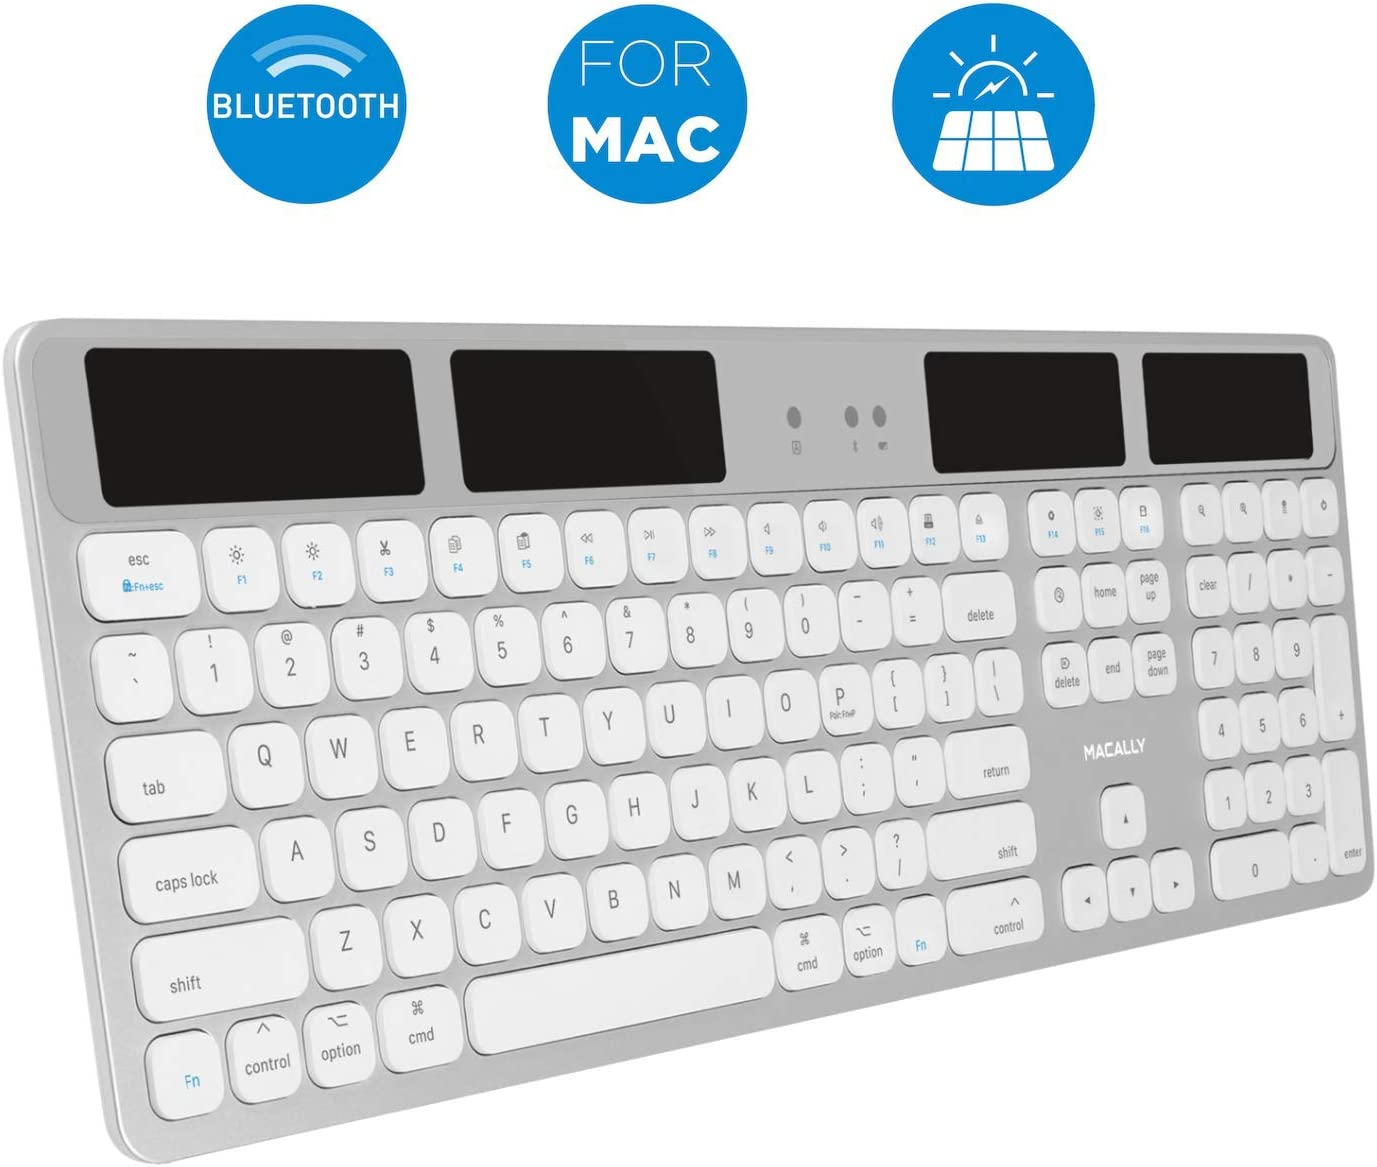 Macally Bluetooth Wireless Solar Keyboard for Mac - Rechargeable via Any Light Source (150 hr Battery Life) - Mac Wireless Keyboard with Numeric Keypad & 21 Apple Shortcuts - Aluminium